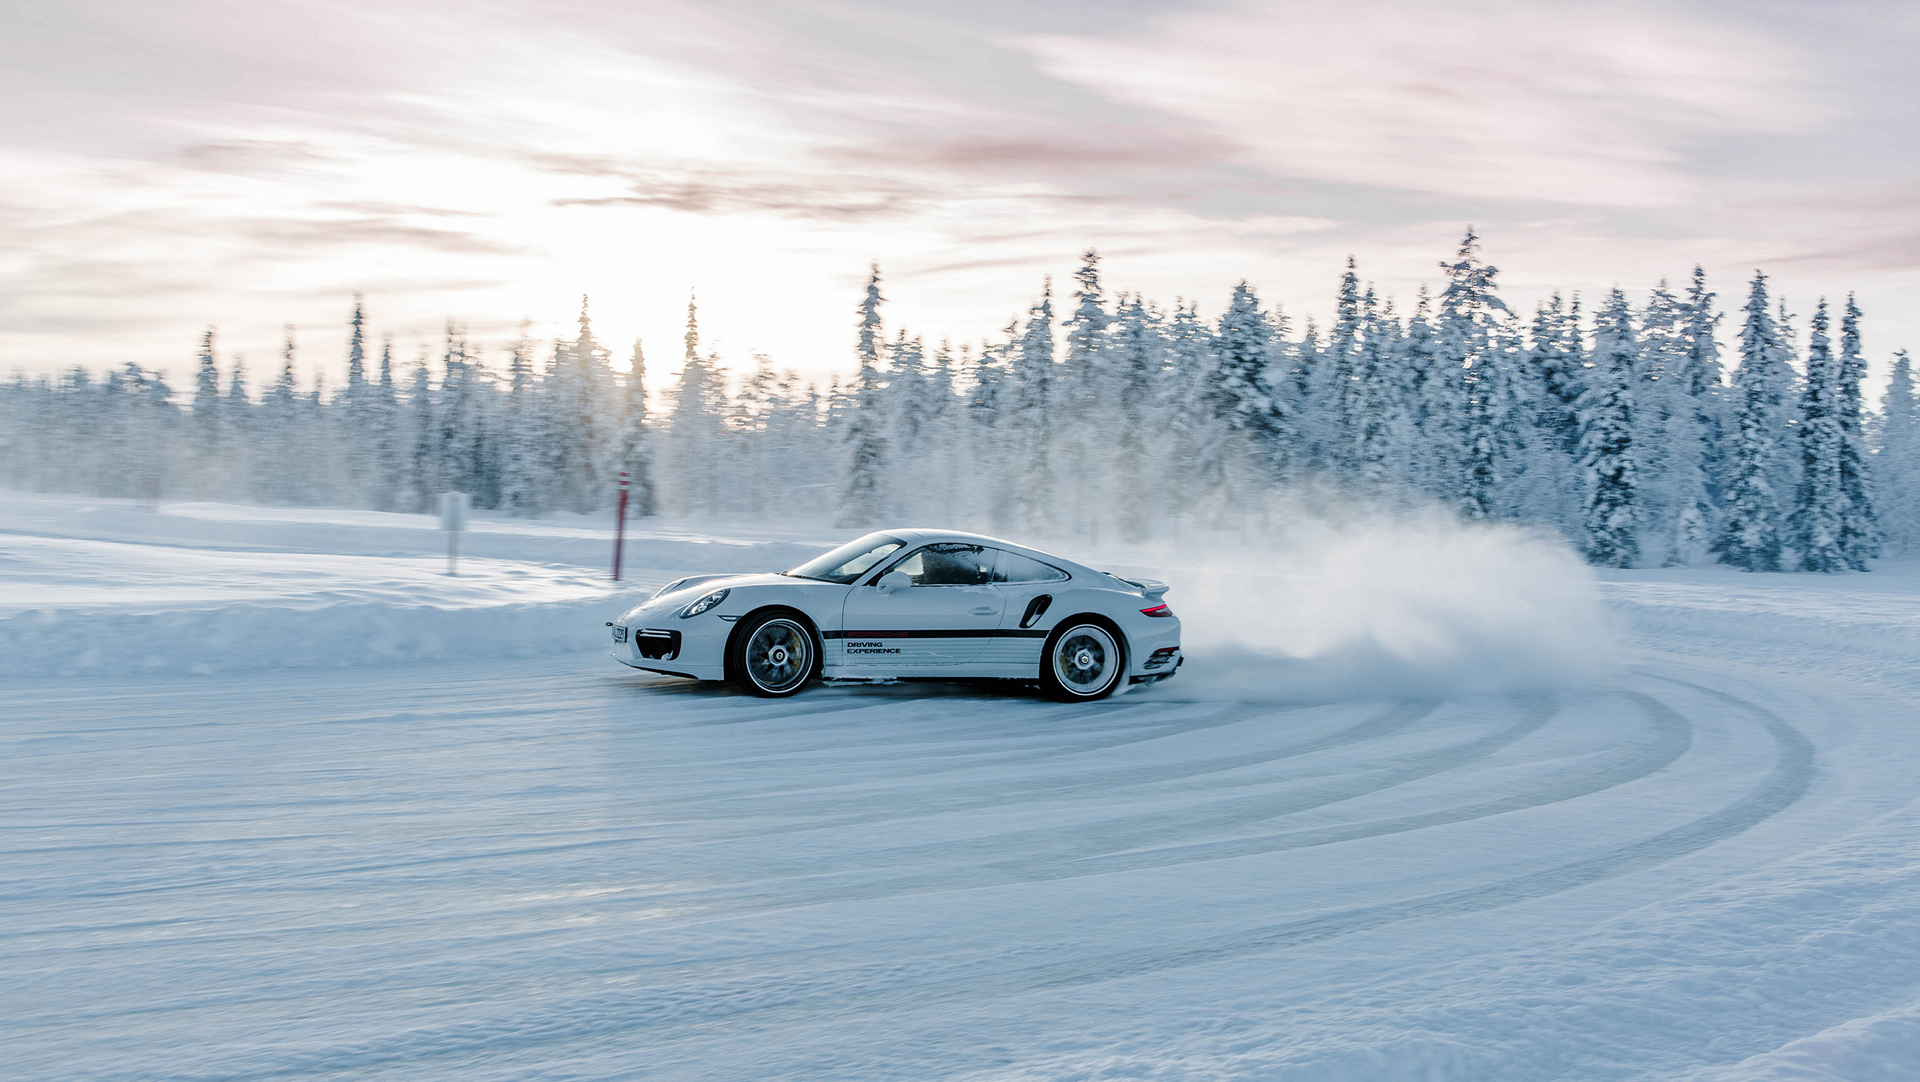 Rally Car Wallpaper Snow Ice Cold Driving Pleasure With Porsche Carrrs Auto Portal